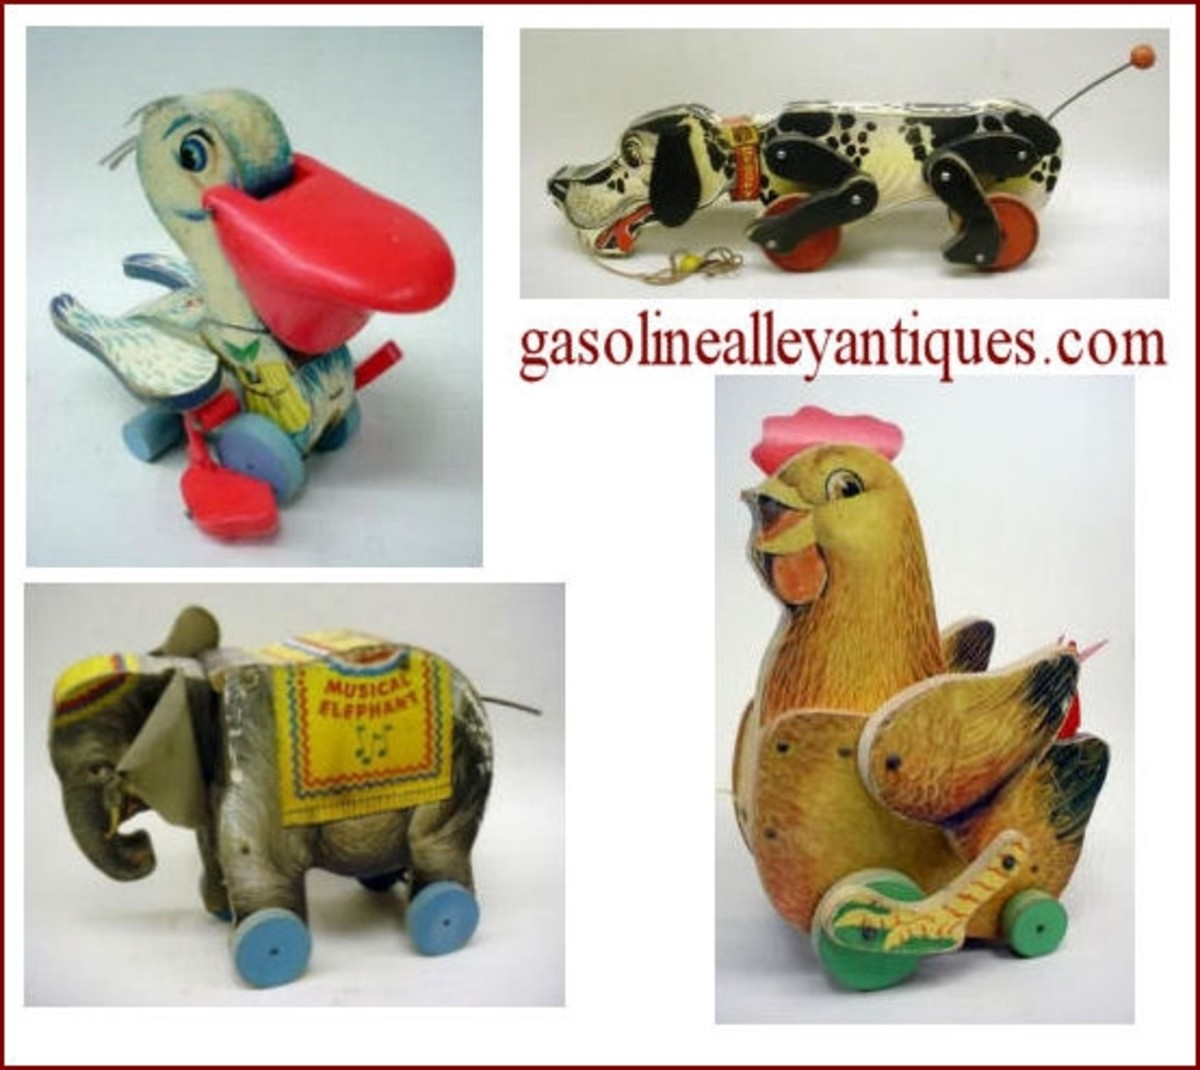 fisher-price-gasolinealleyantiques